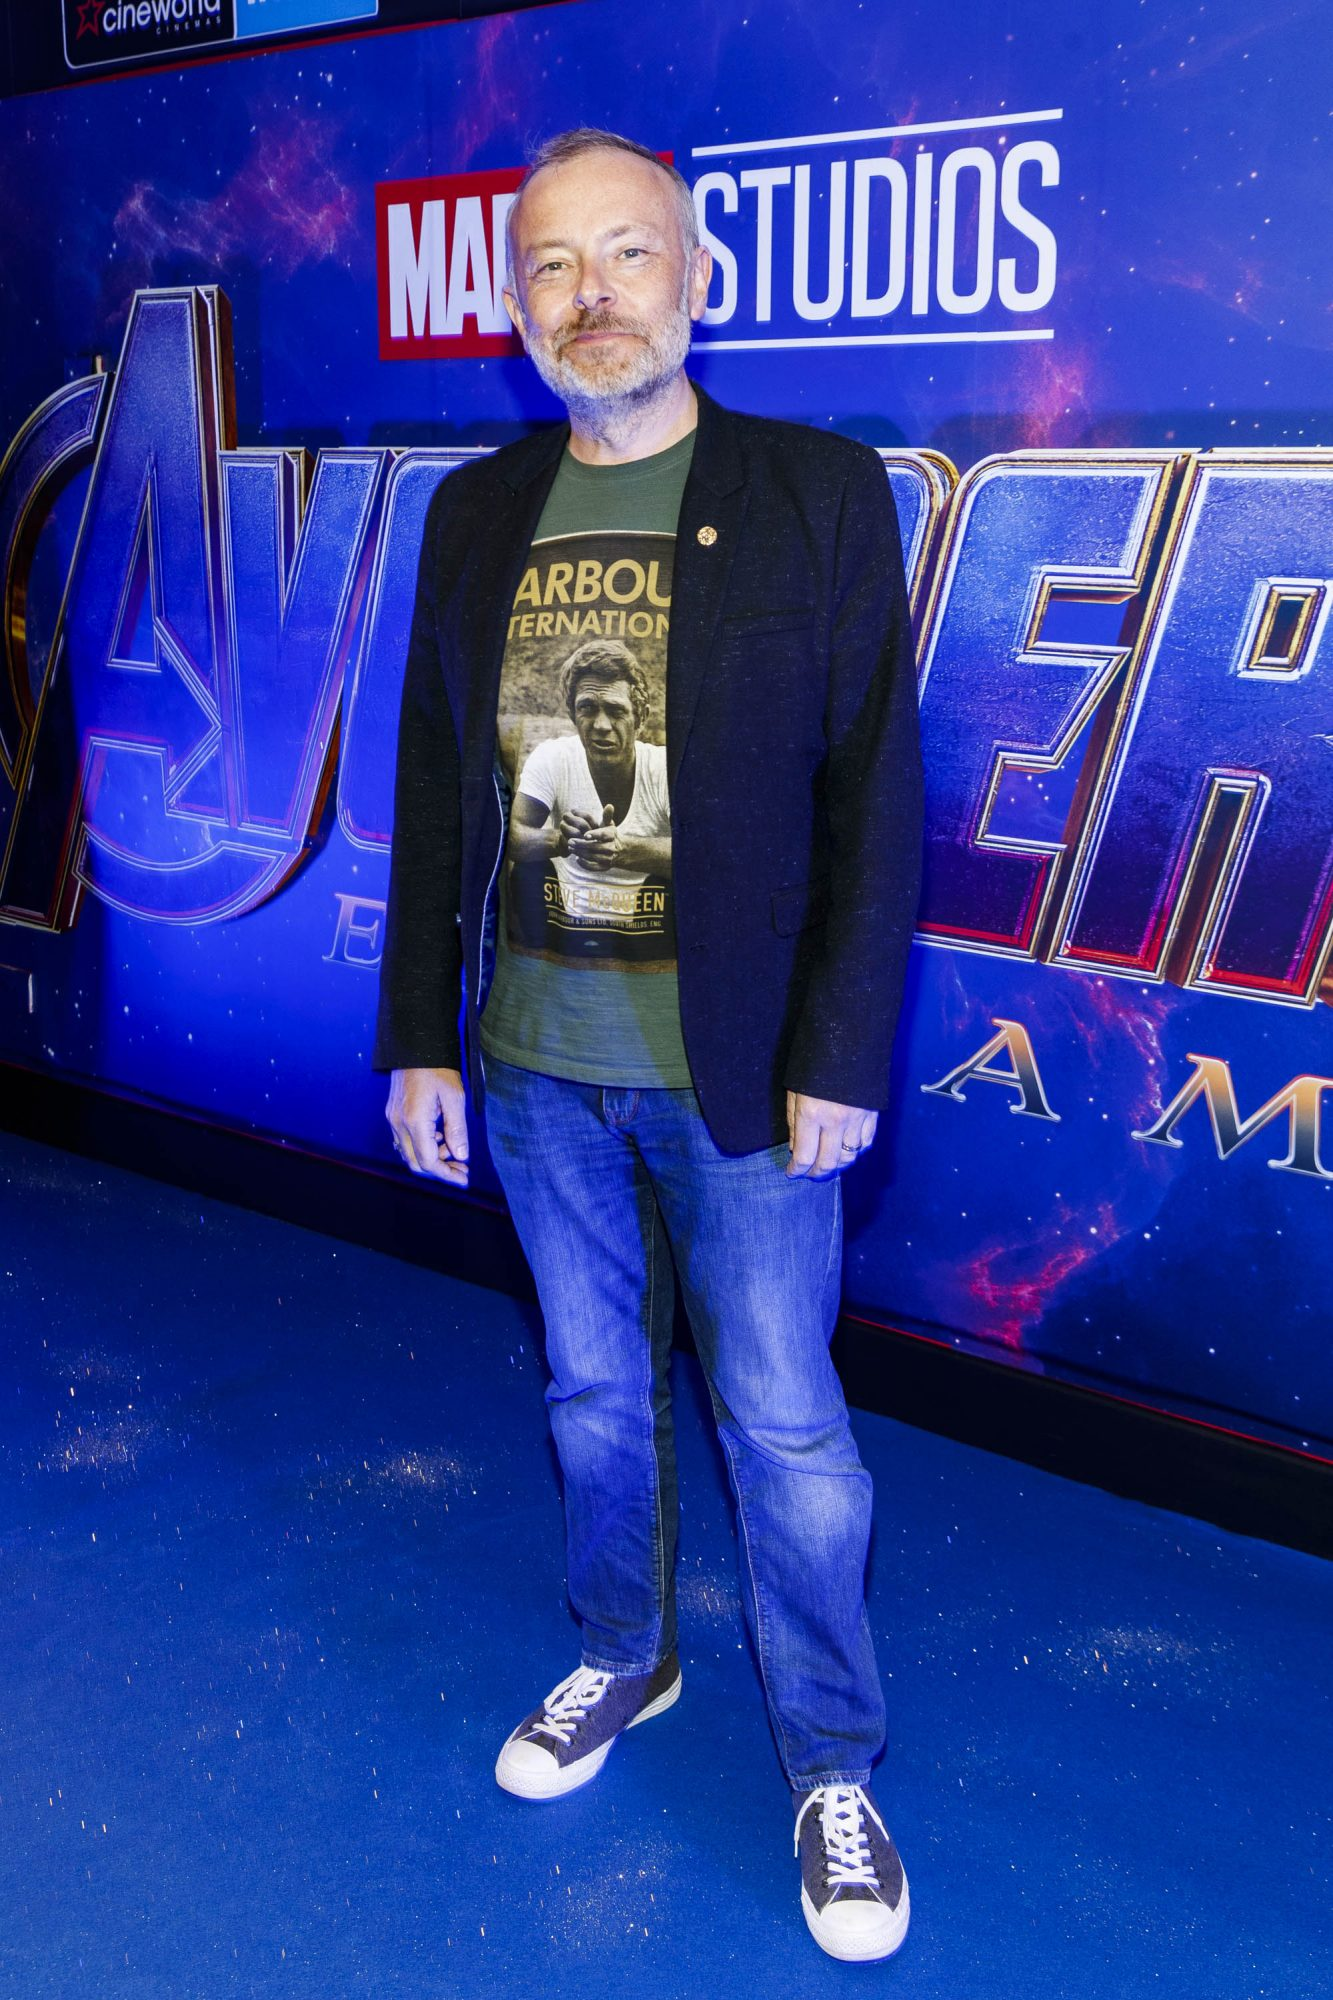 Rick O'Shea pictured at the special preview screening of Marvel Studios' Avengers: Endgame at Cineworld Dublin. Picture by: Andres Poveda